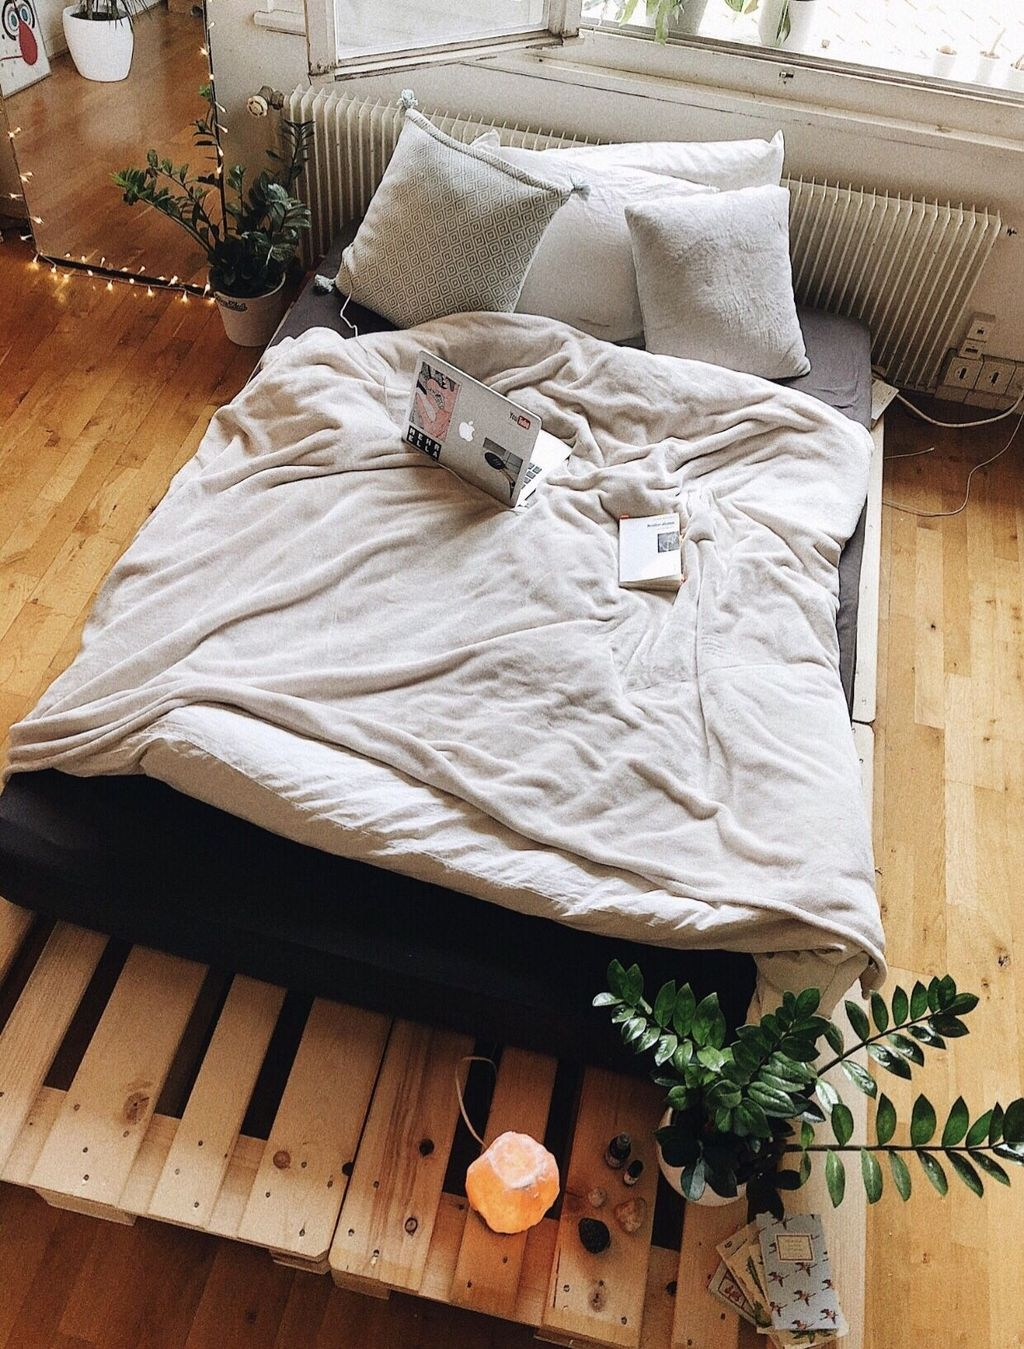 Unordinary Recycled Pallet Bed Frame Ideas To Make It Yourself09